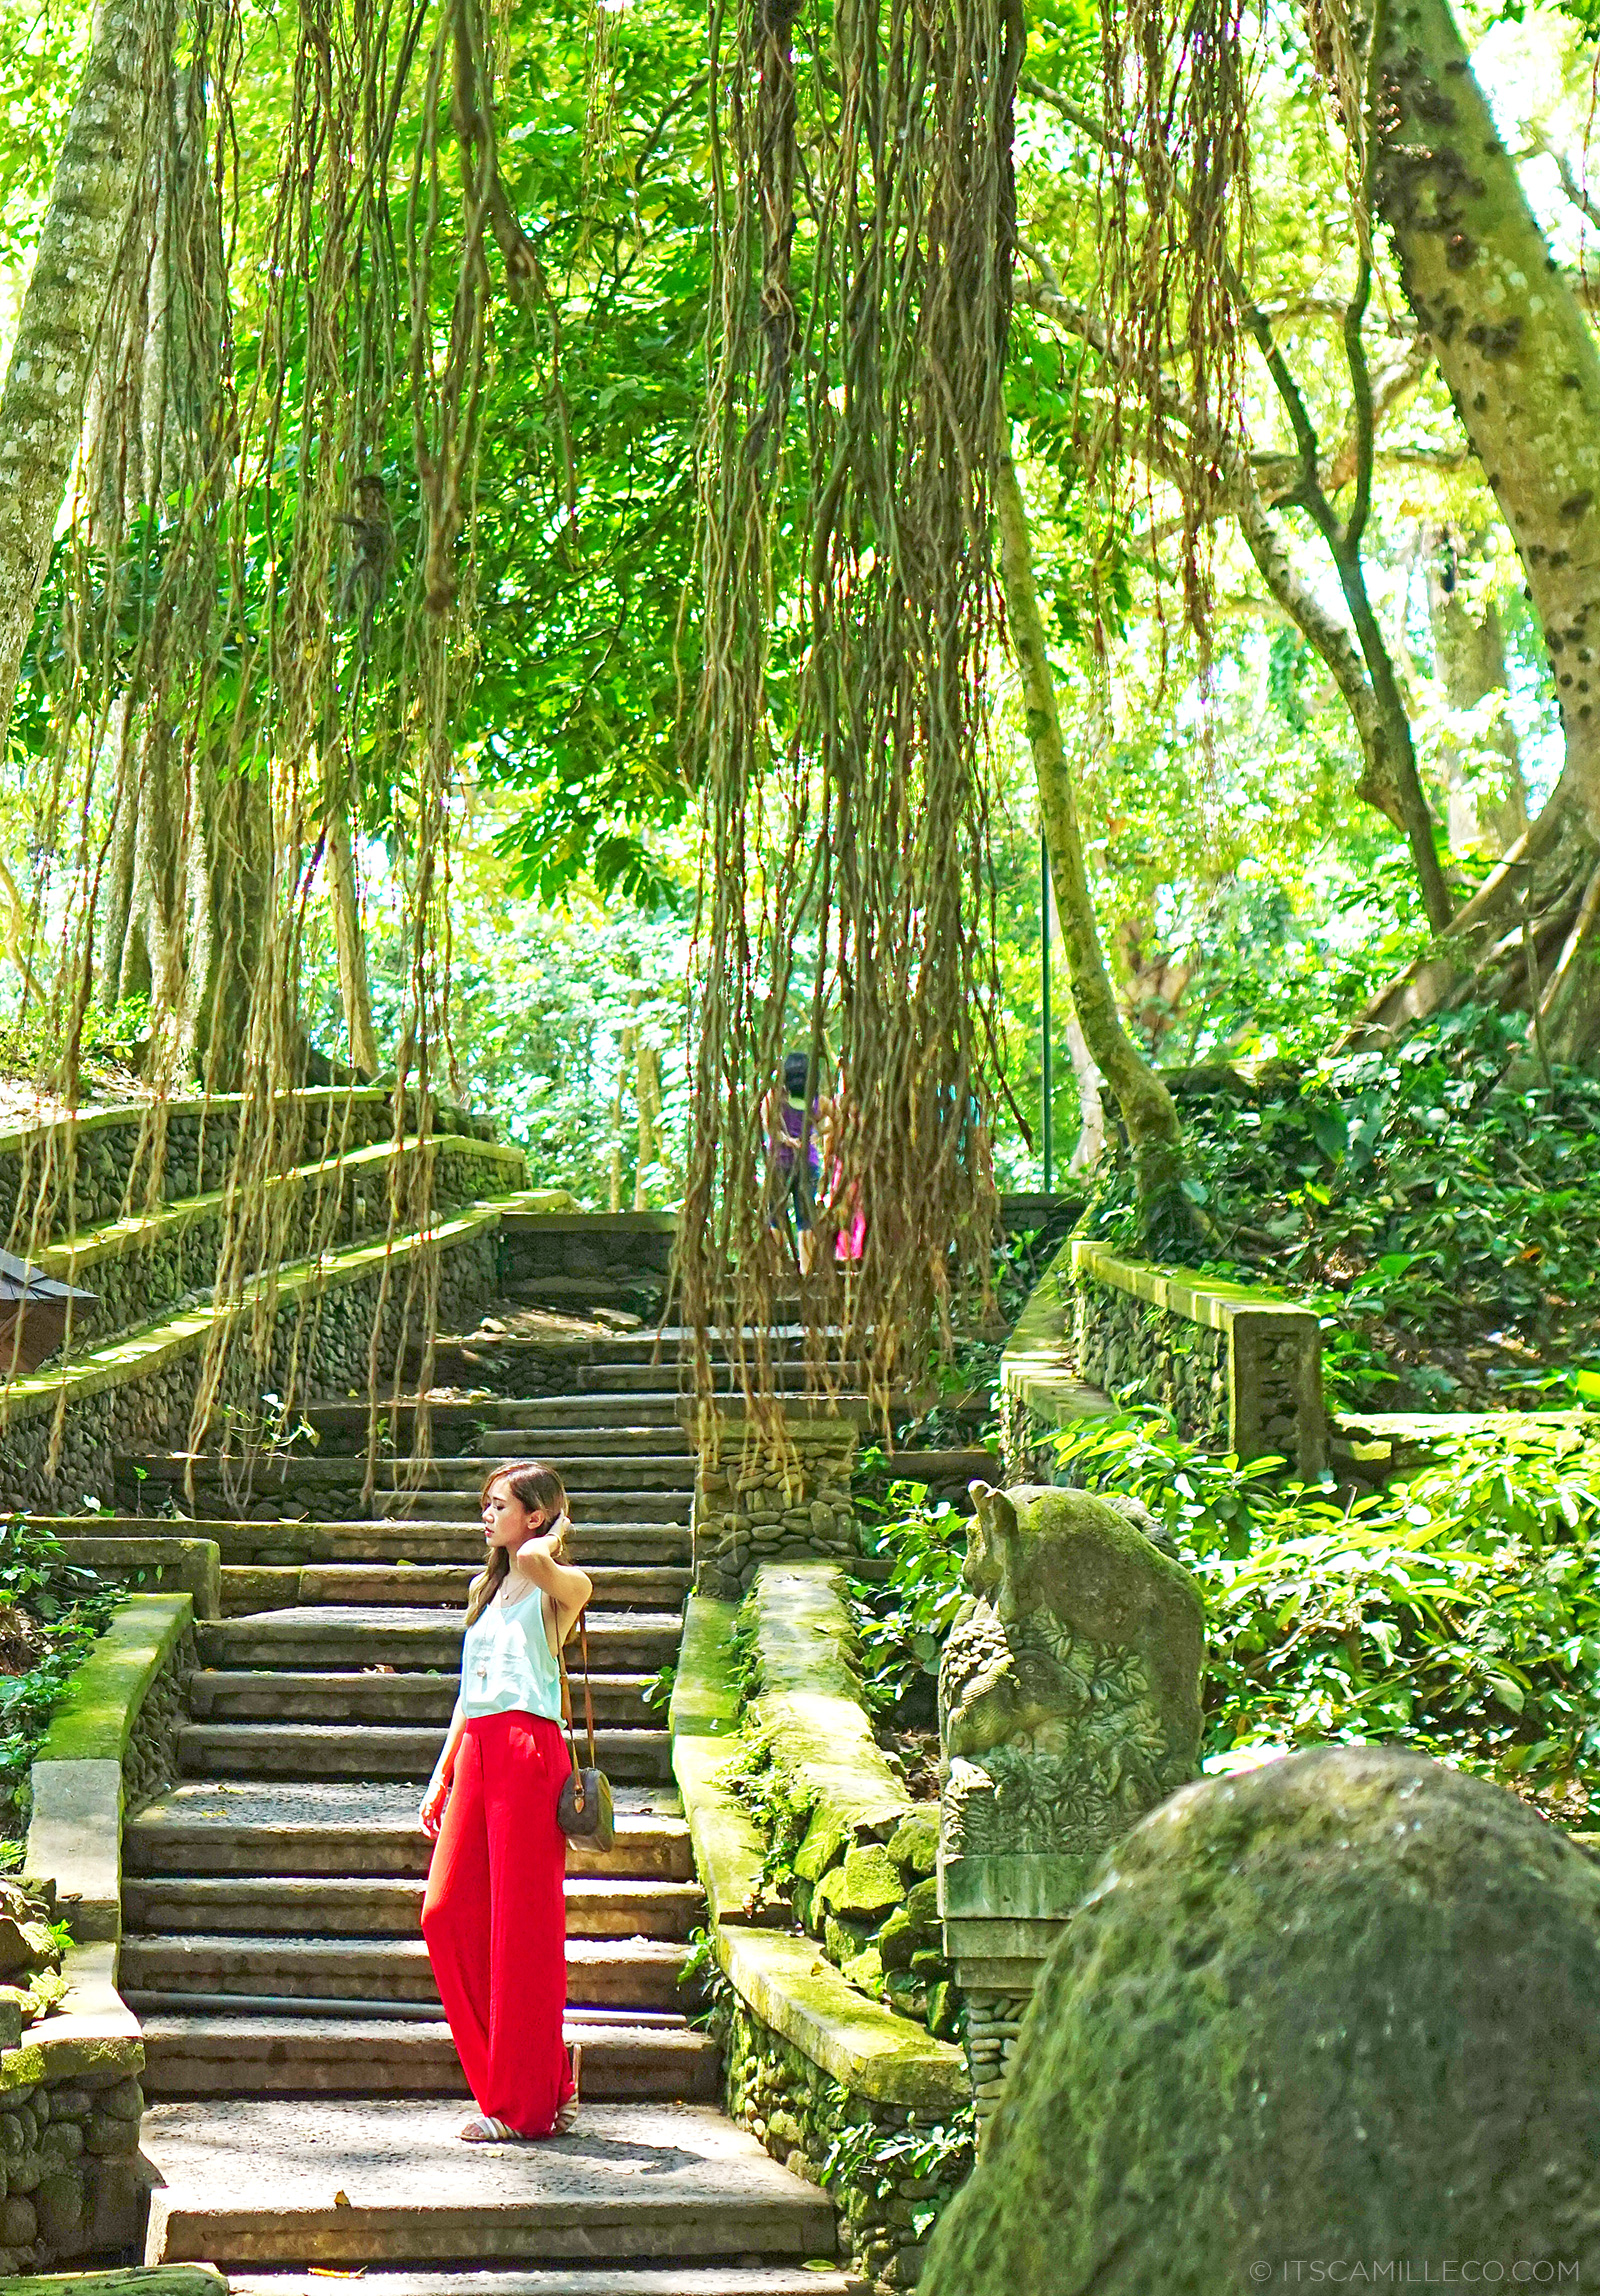 Ubud Monkey Forest | www.itscamilleco.com